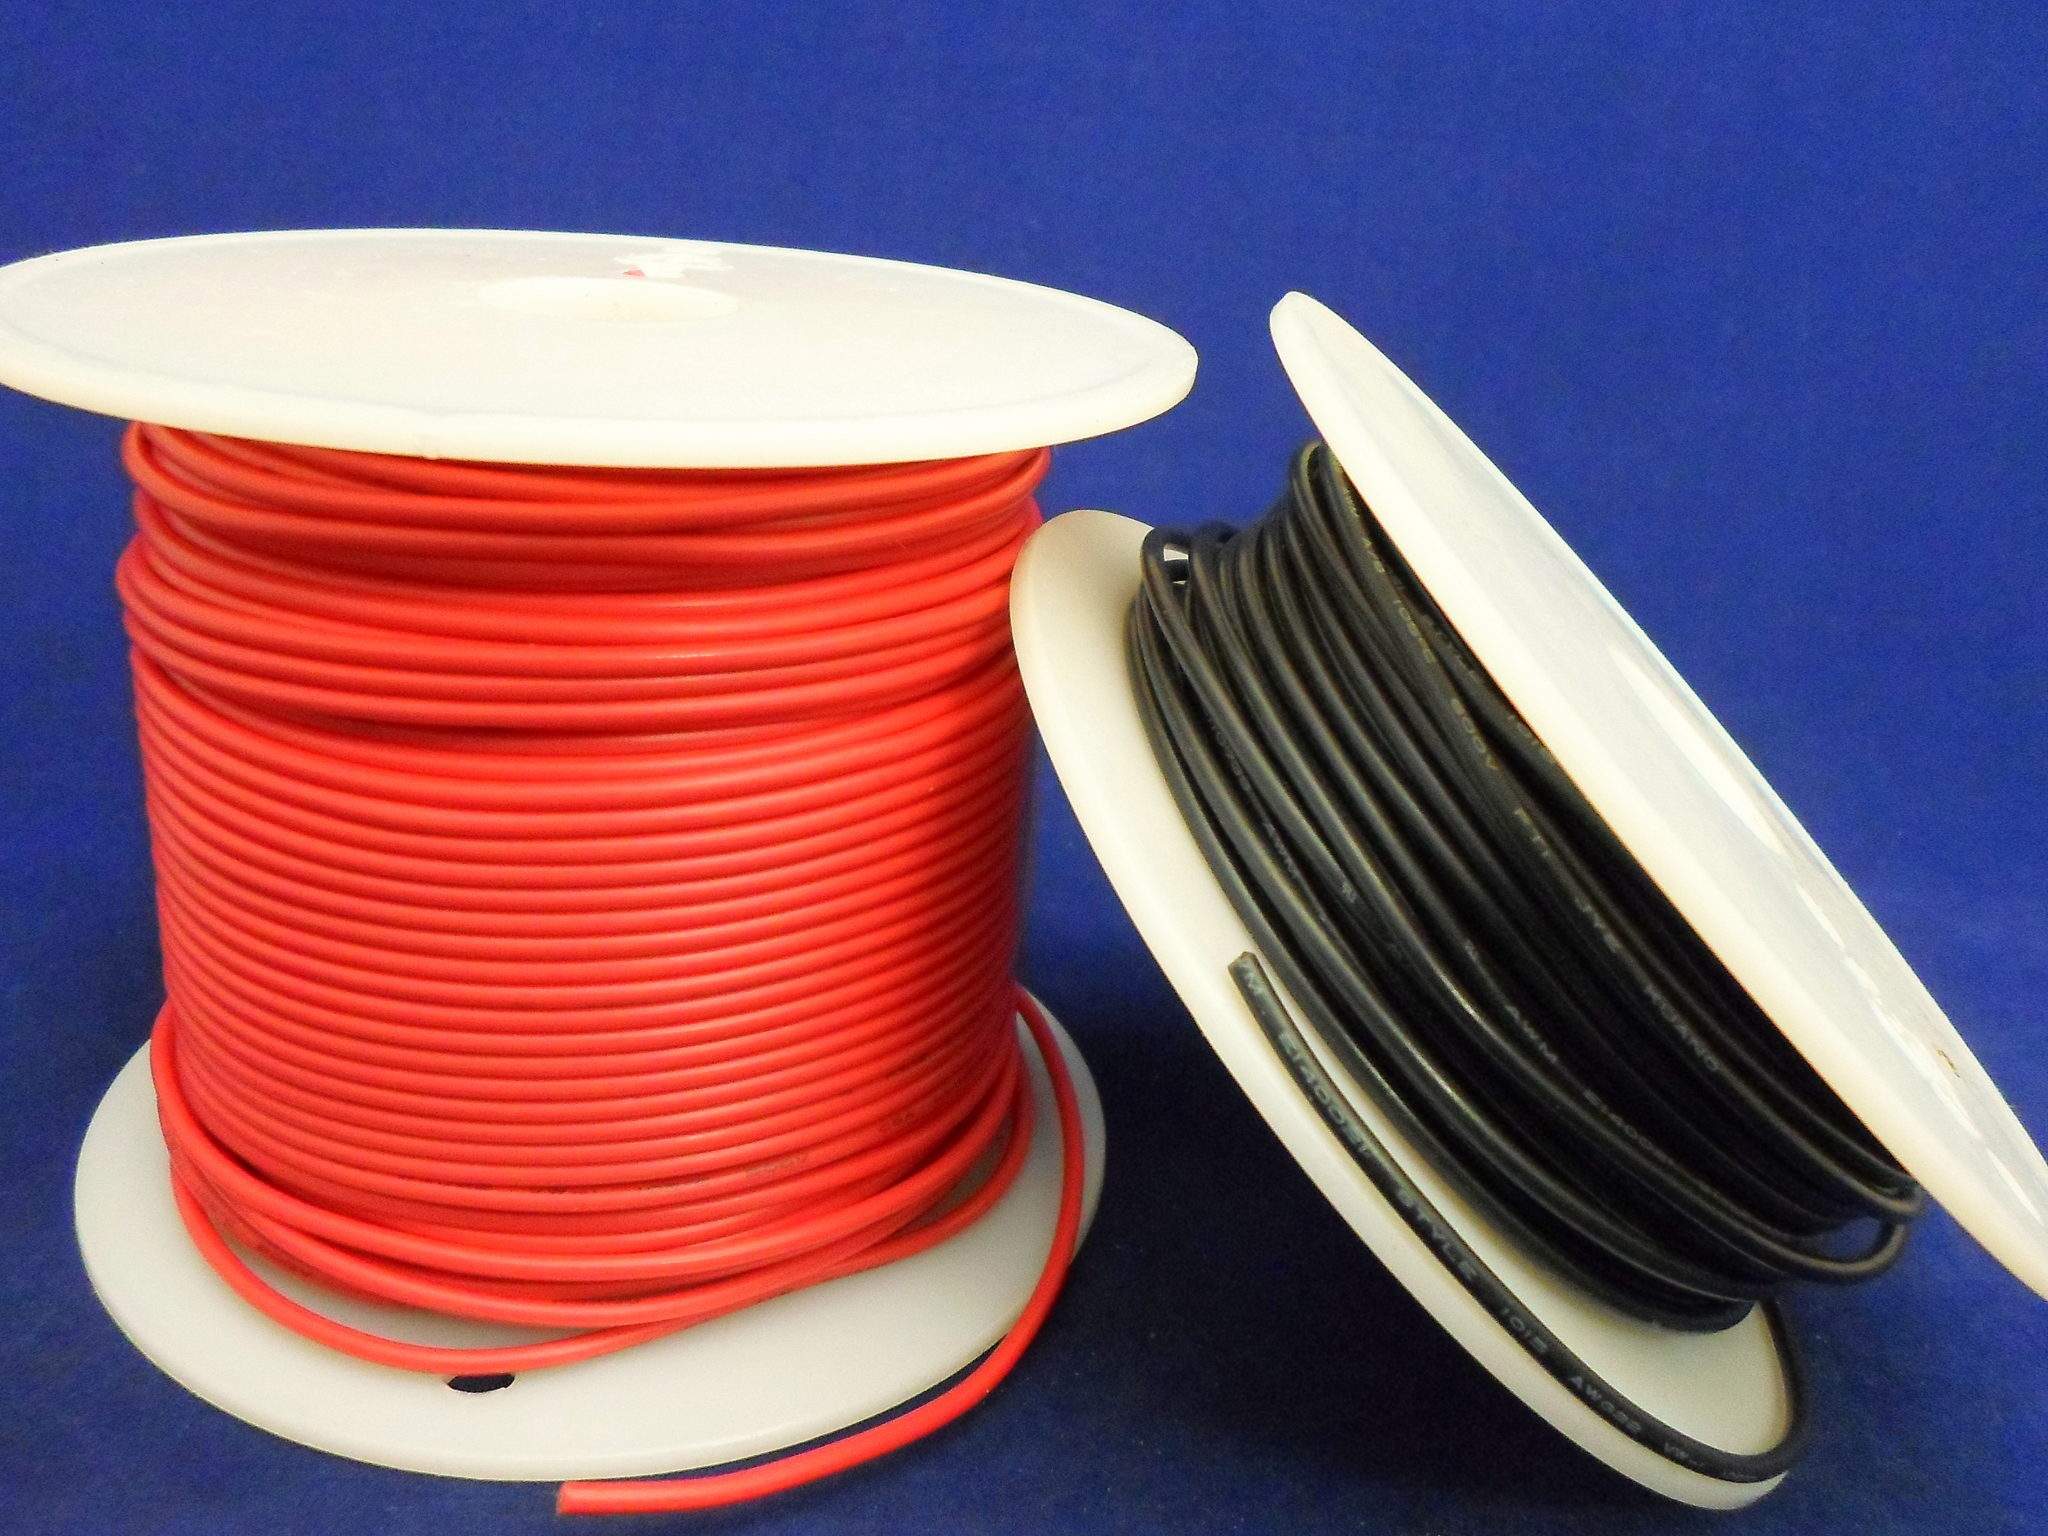 Wire Hook-up 22AWG Stranded Pvc Red - Ajax Scientifc Ltd